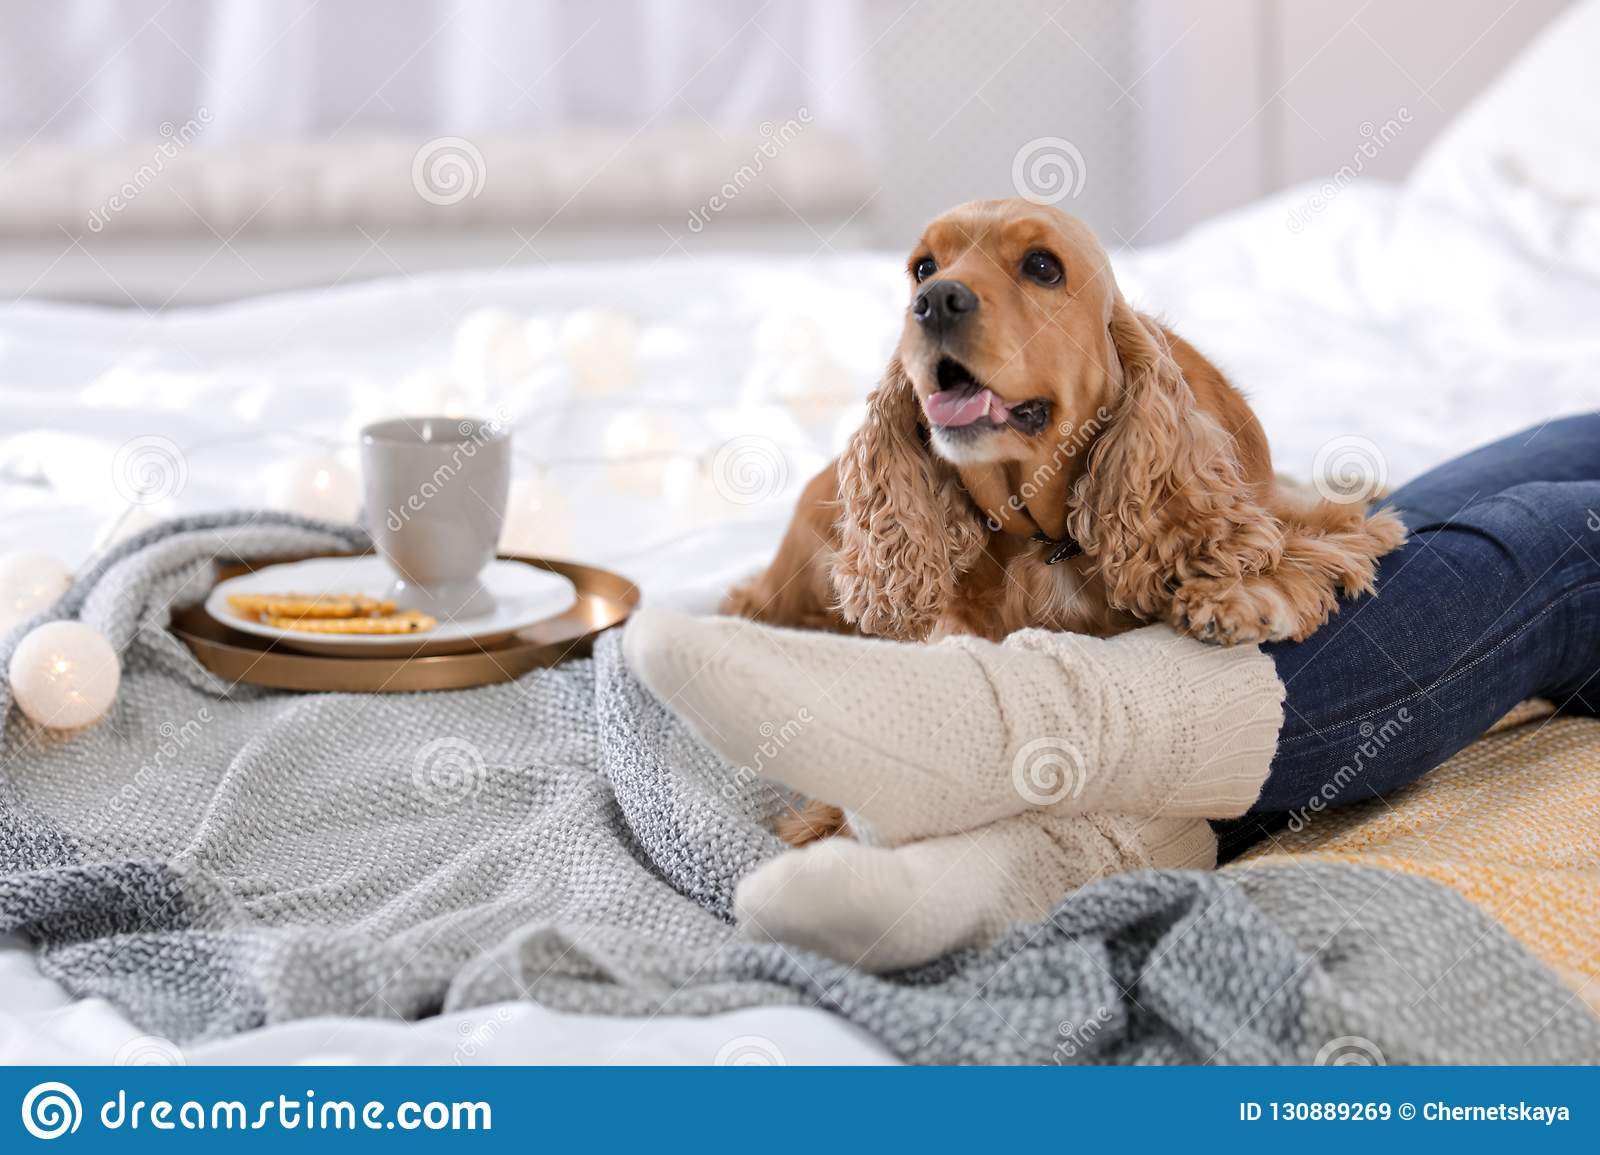 Cute Cocker Spaniel dog with warm blanket lying near owner on bed at home